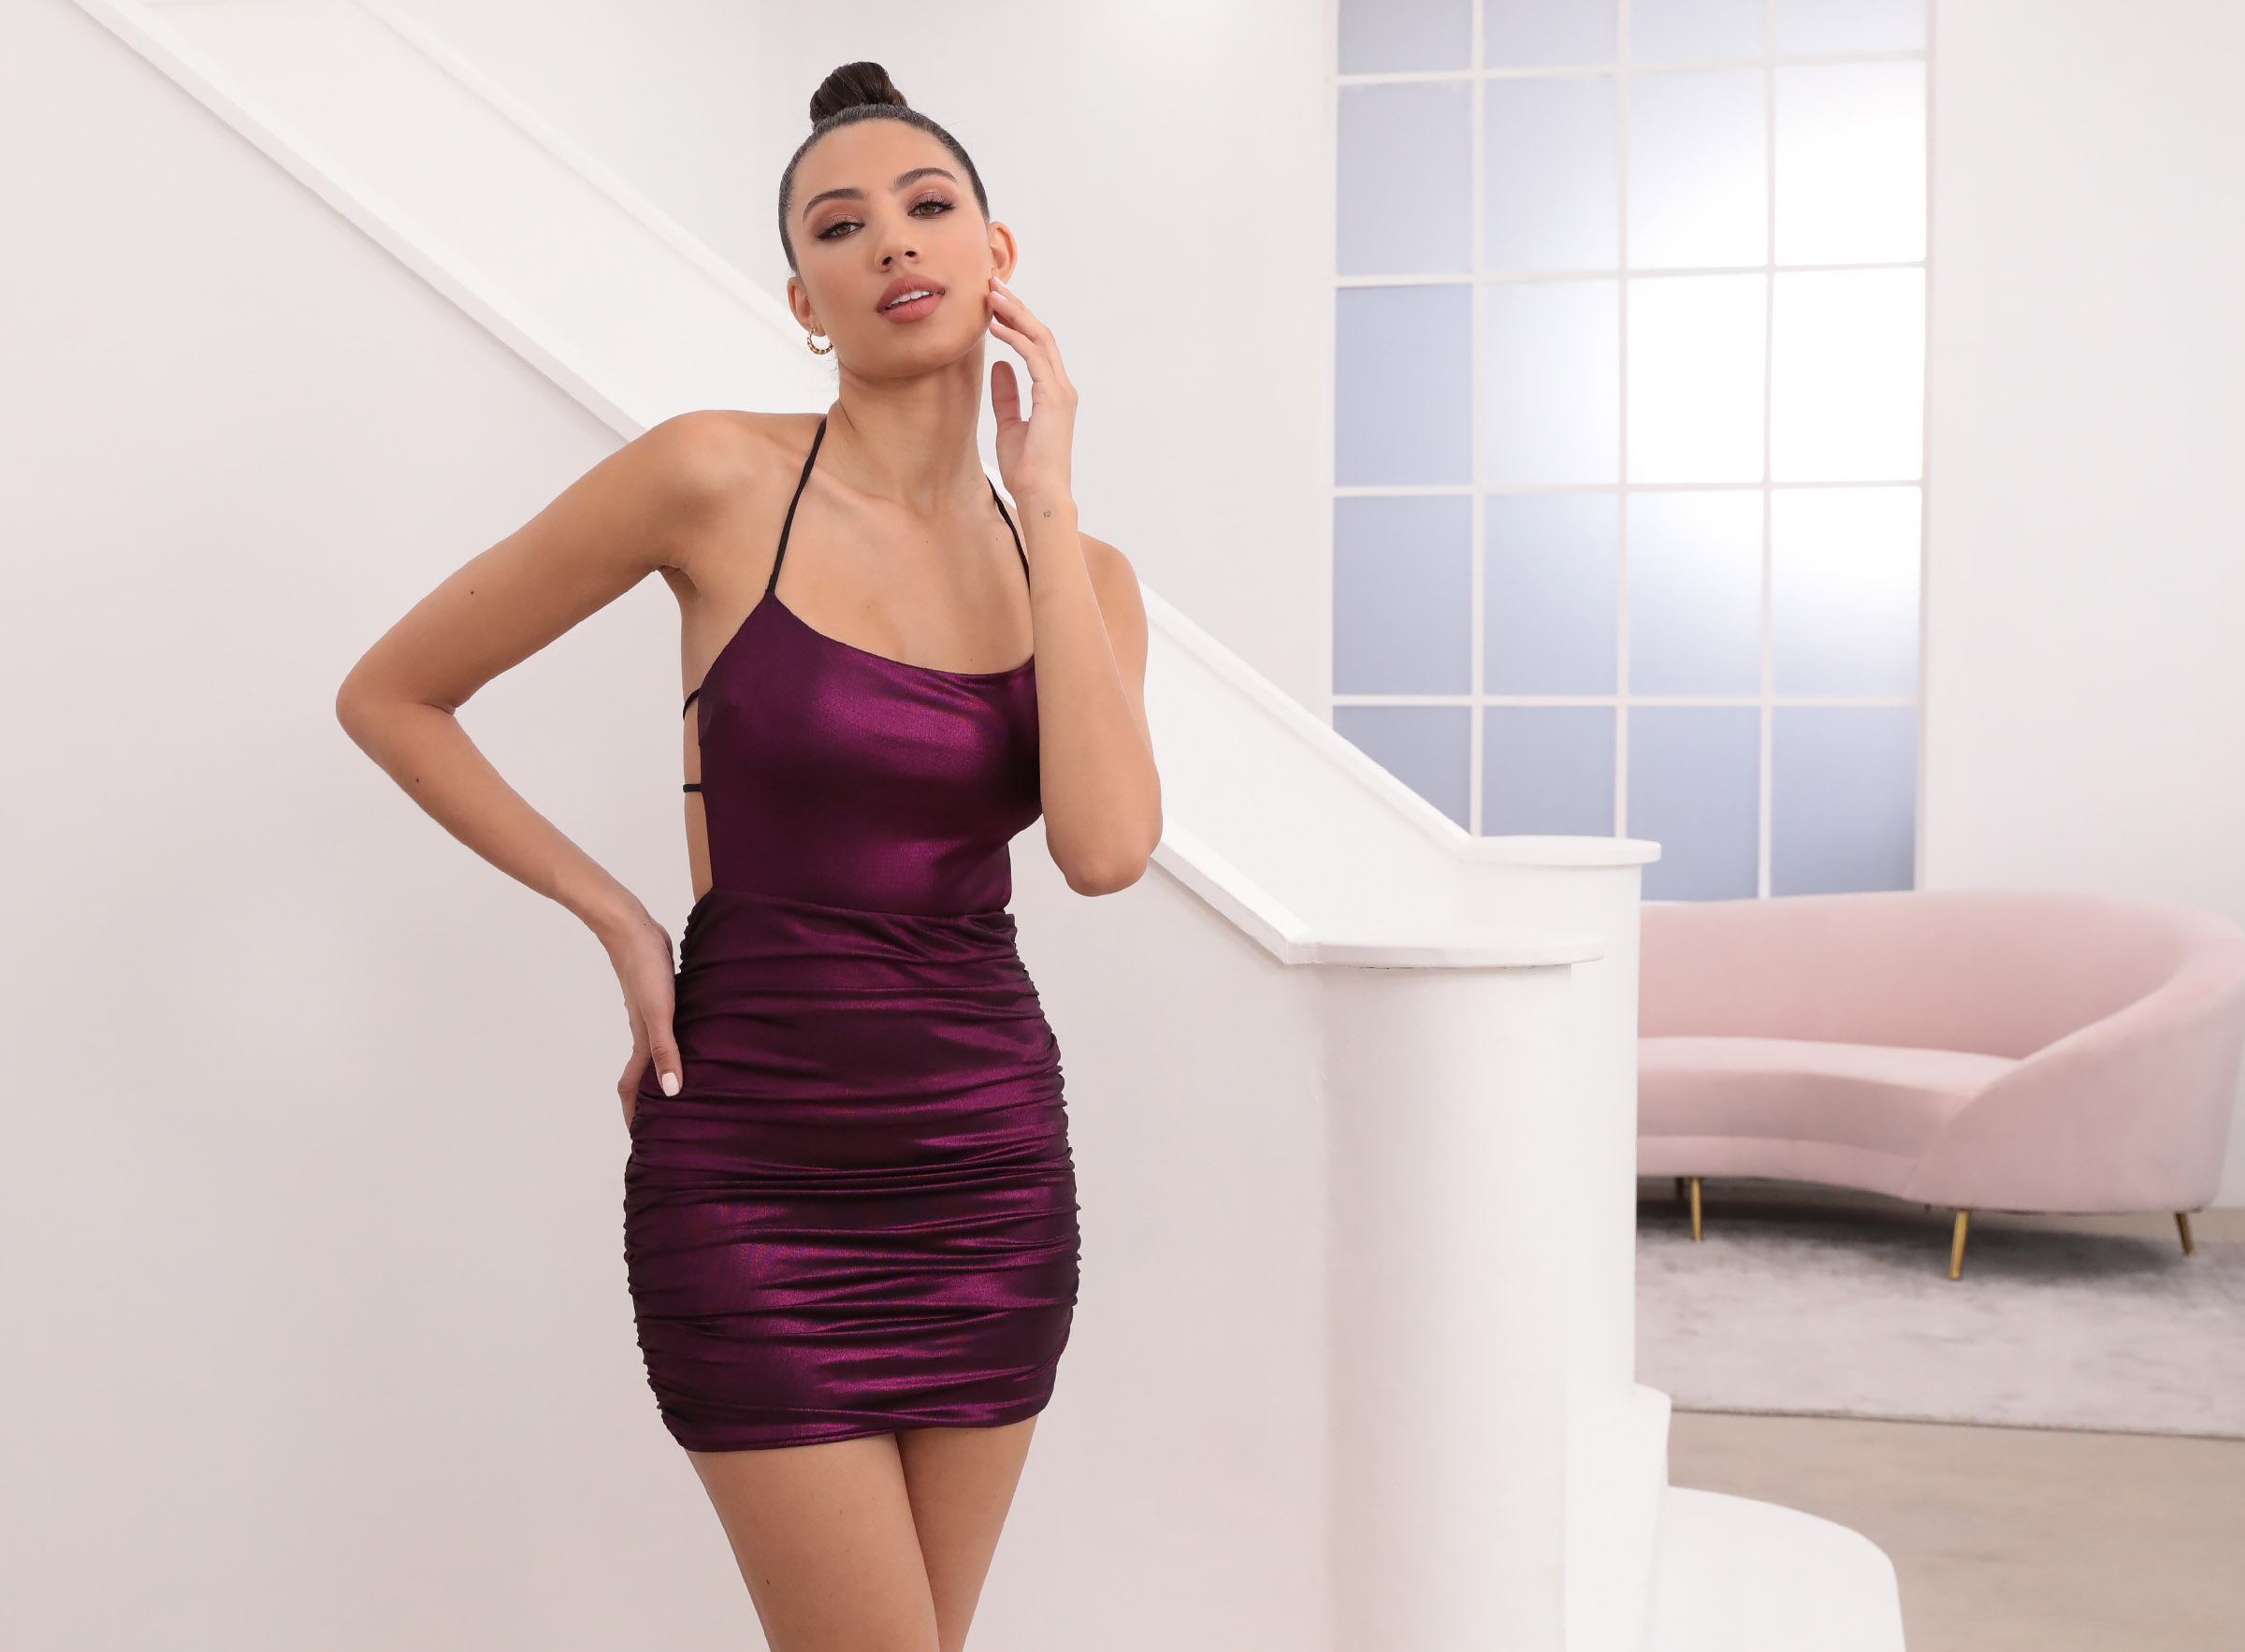 Luminescence Mesh Dress in Metallic Fuchsia